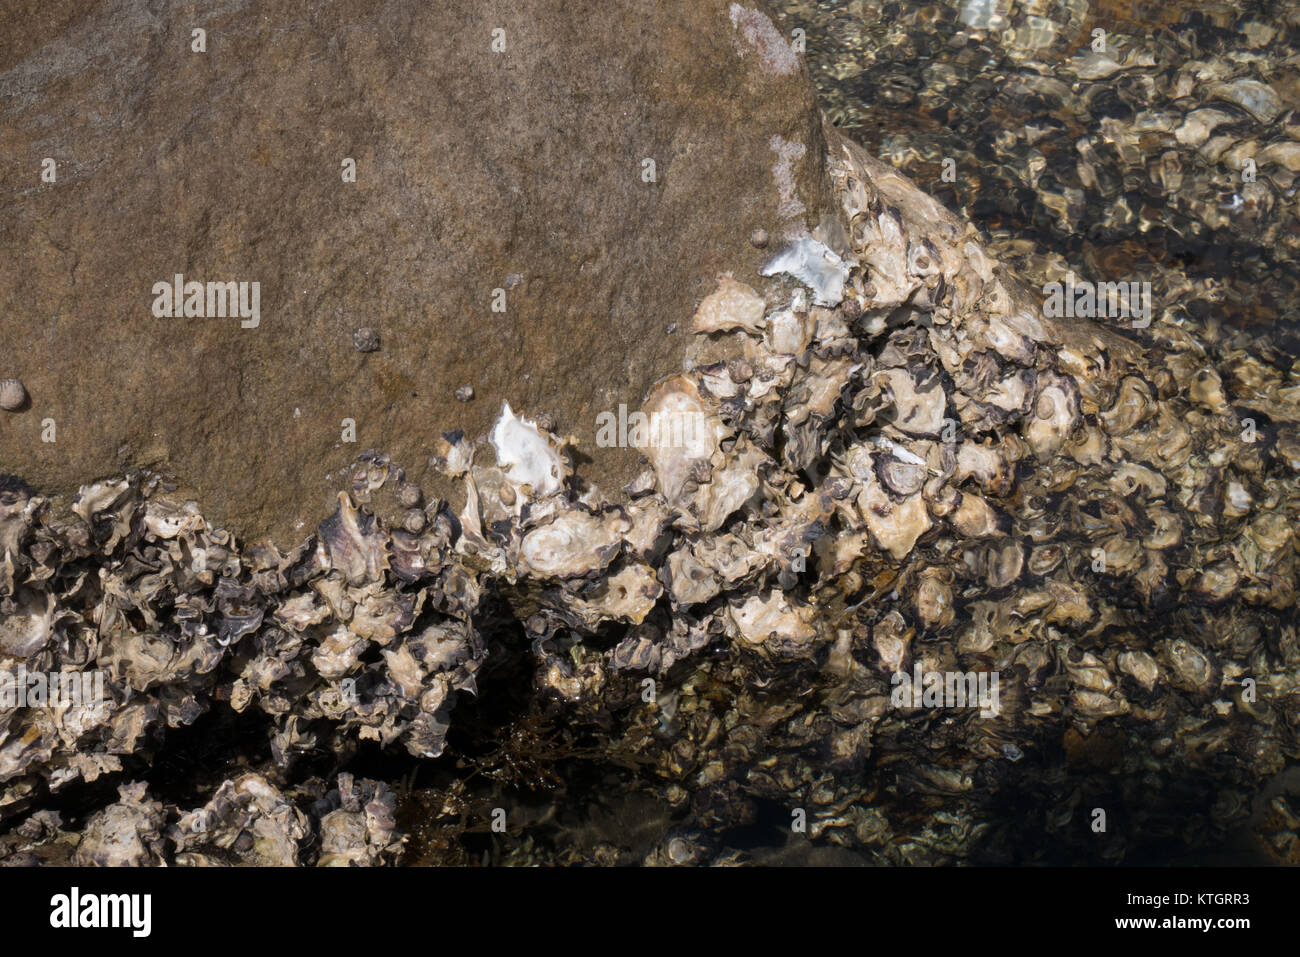 creatures sticking on rocks of a sea shore - Stock Image